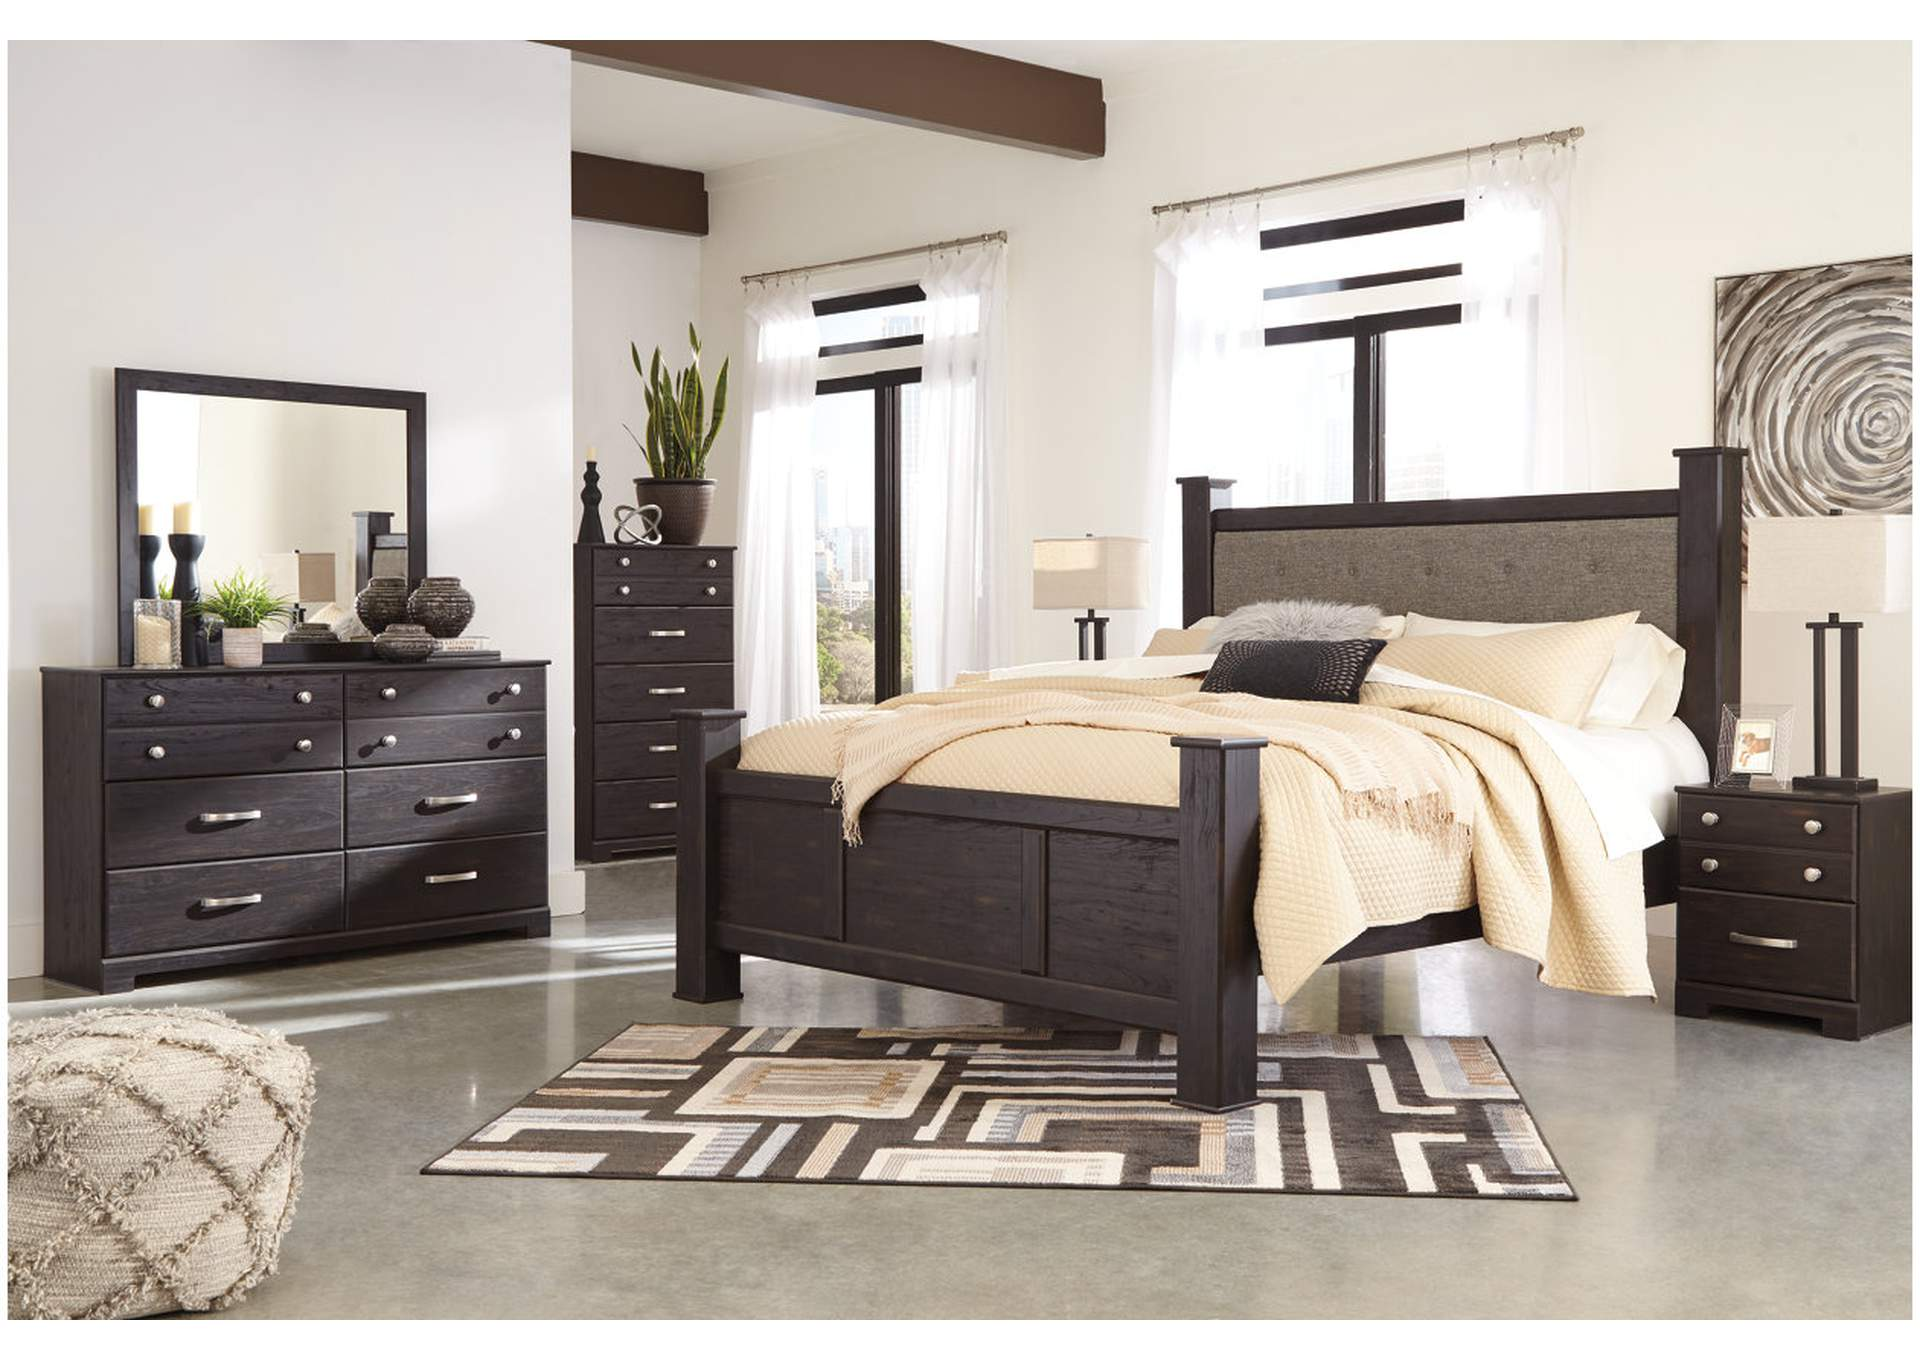 Reylow Dark Brown Queen Bed Set w/Queen Upholstered Poster Bed and Dresser w/Mirror,Signature Design By Ashley